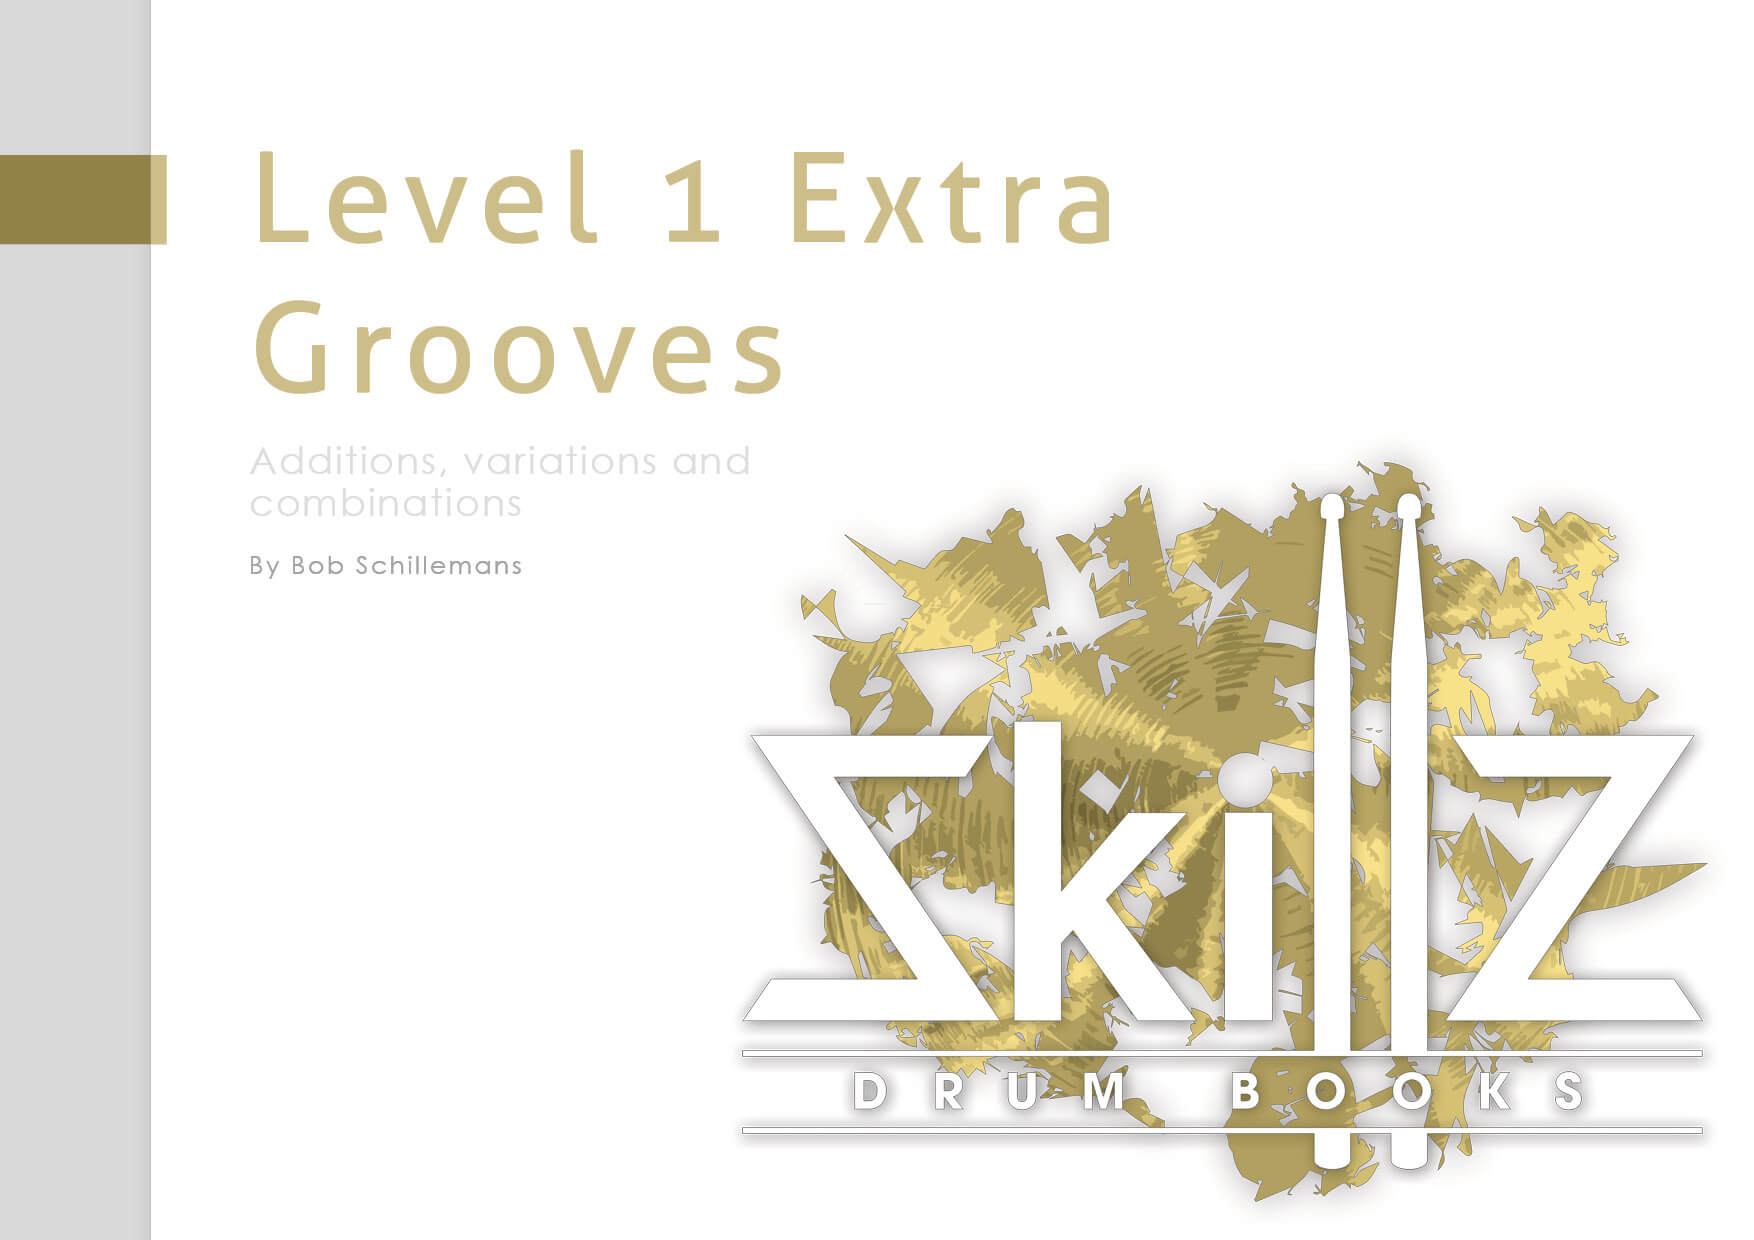 Cover Online Drum Book Level 1 Extra Grooves Skillz Drum Lessons